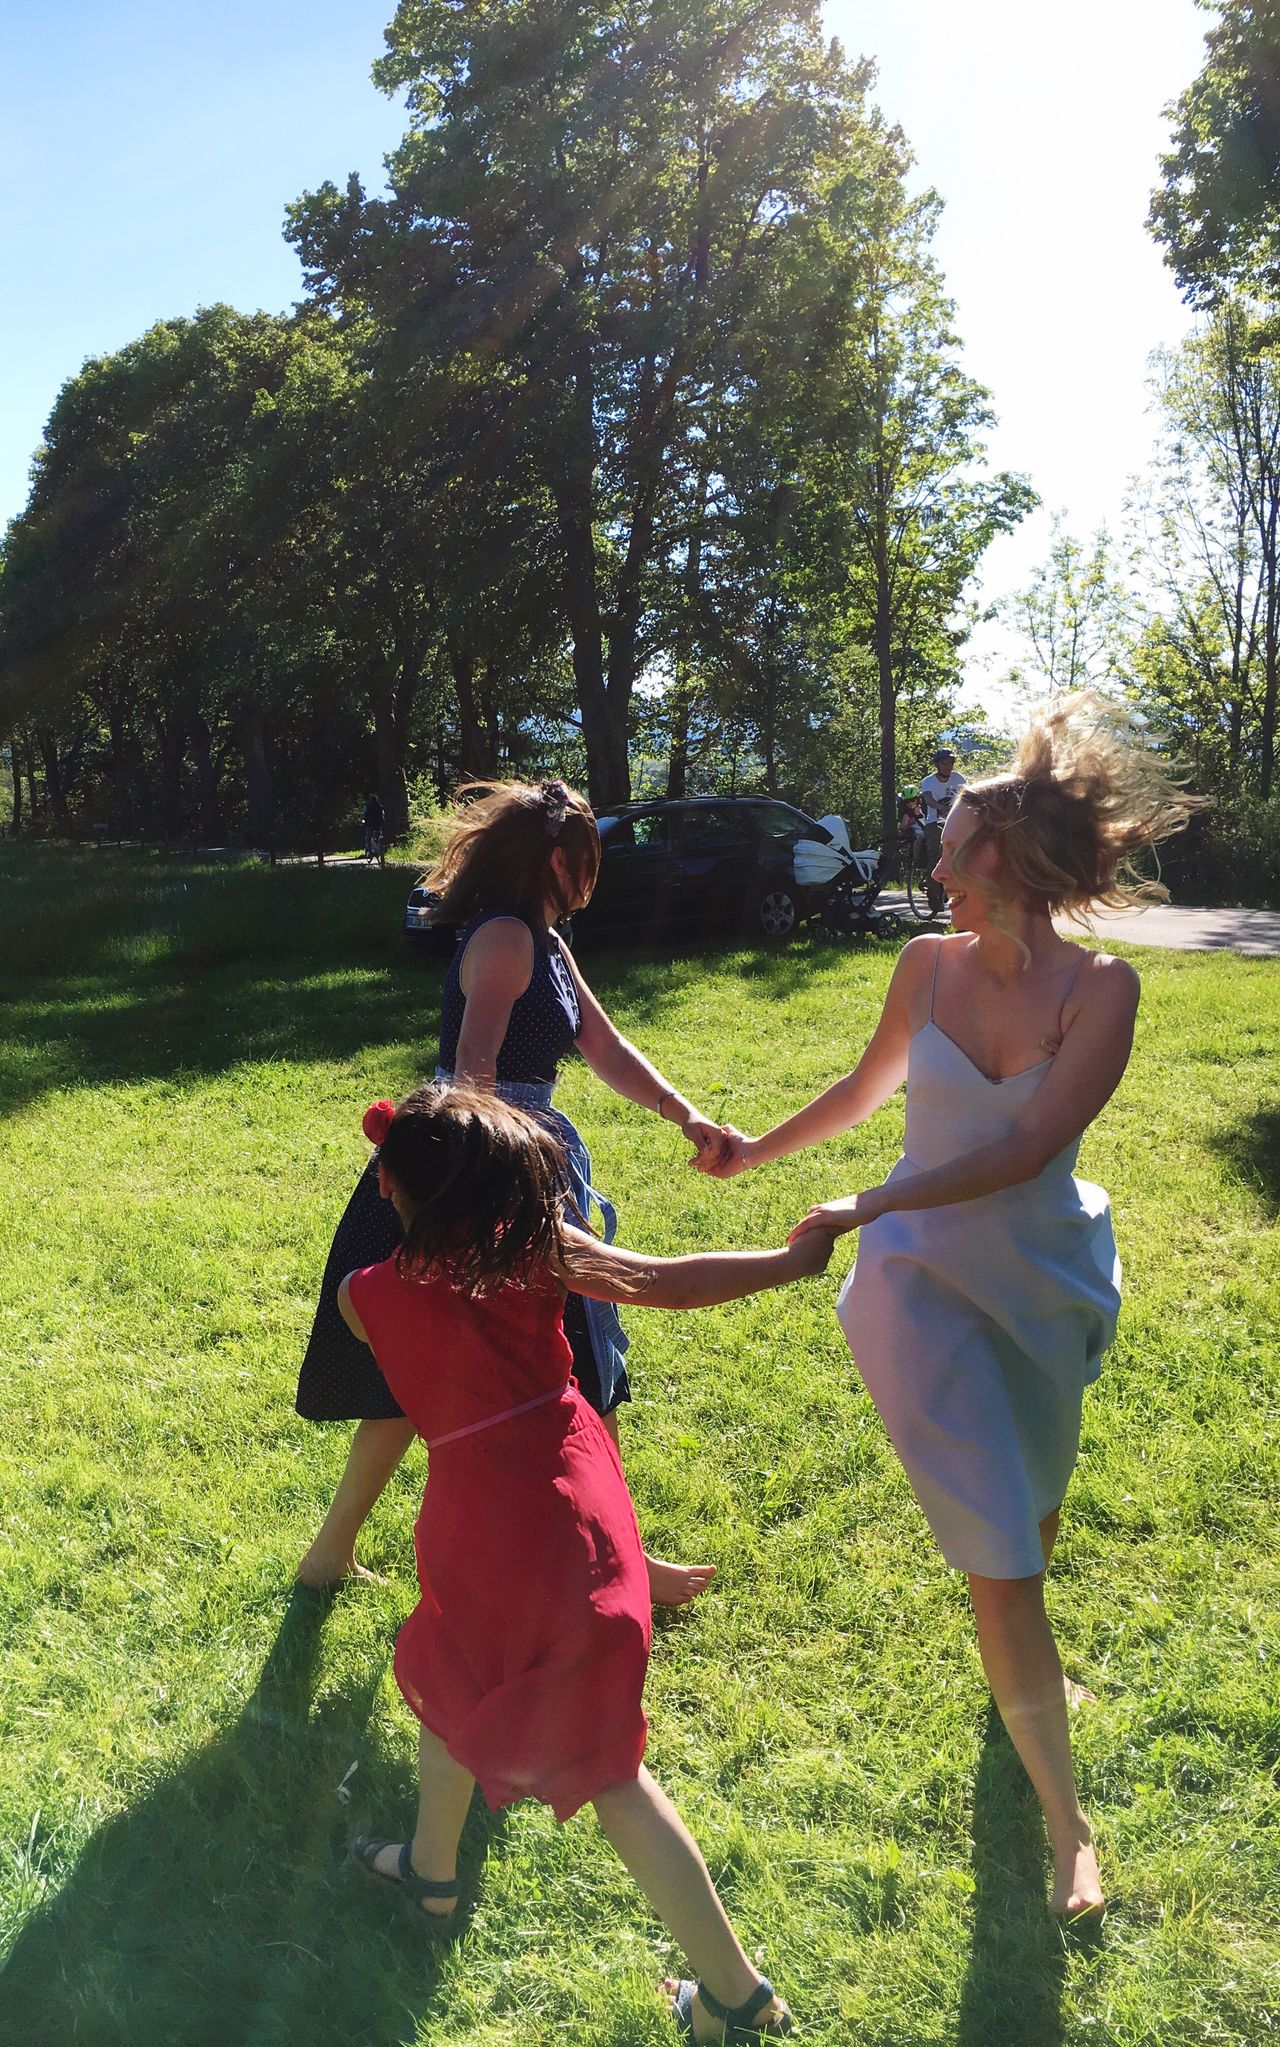 Live For The Story Hochzeit Having Fun 💃🏼 Togetherness Fun Grass Friendship Casual Clothing Leisure Activity Full Length Women Young Women Day Sunlight Happiness Smiling Bonding Real People Outdoors Carefree Young Adult